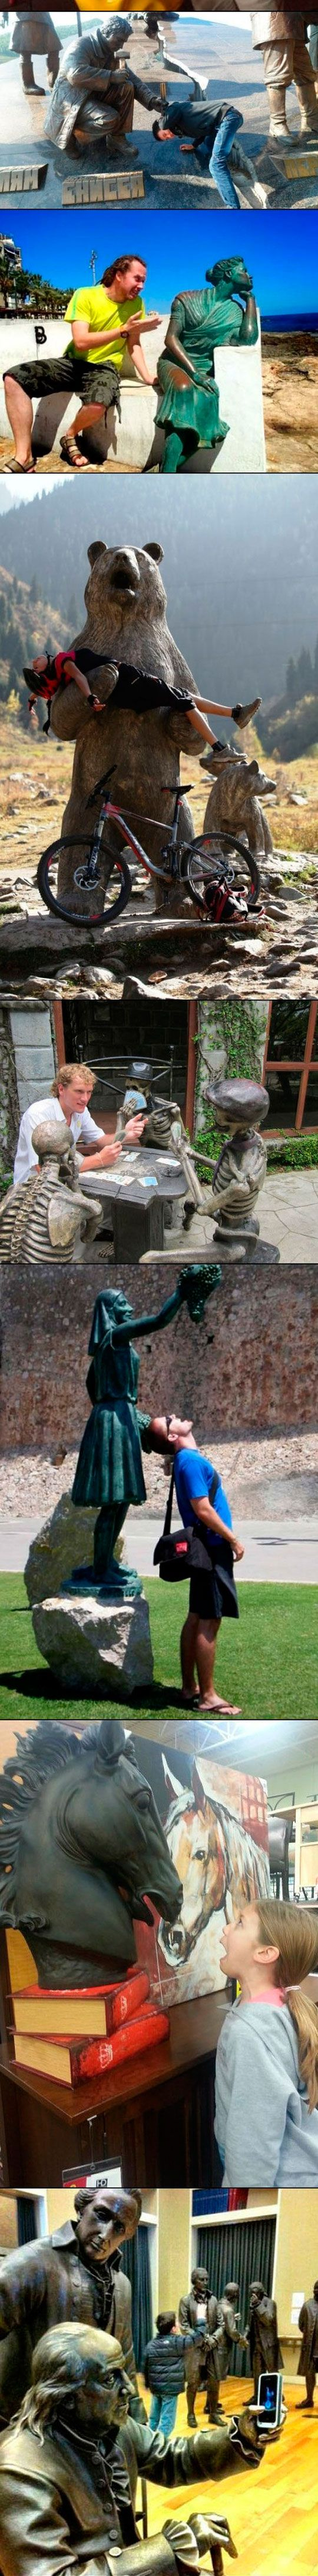 some statues...